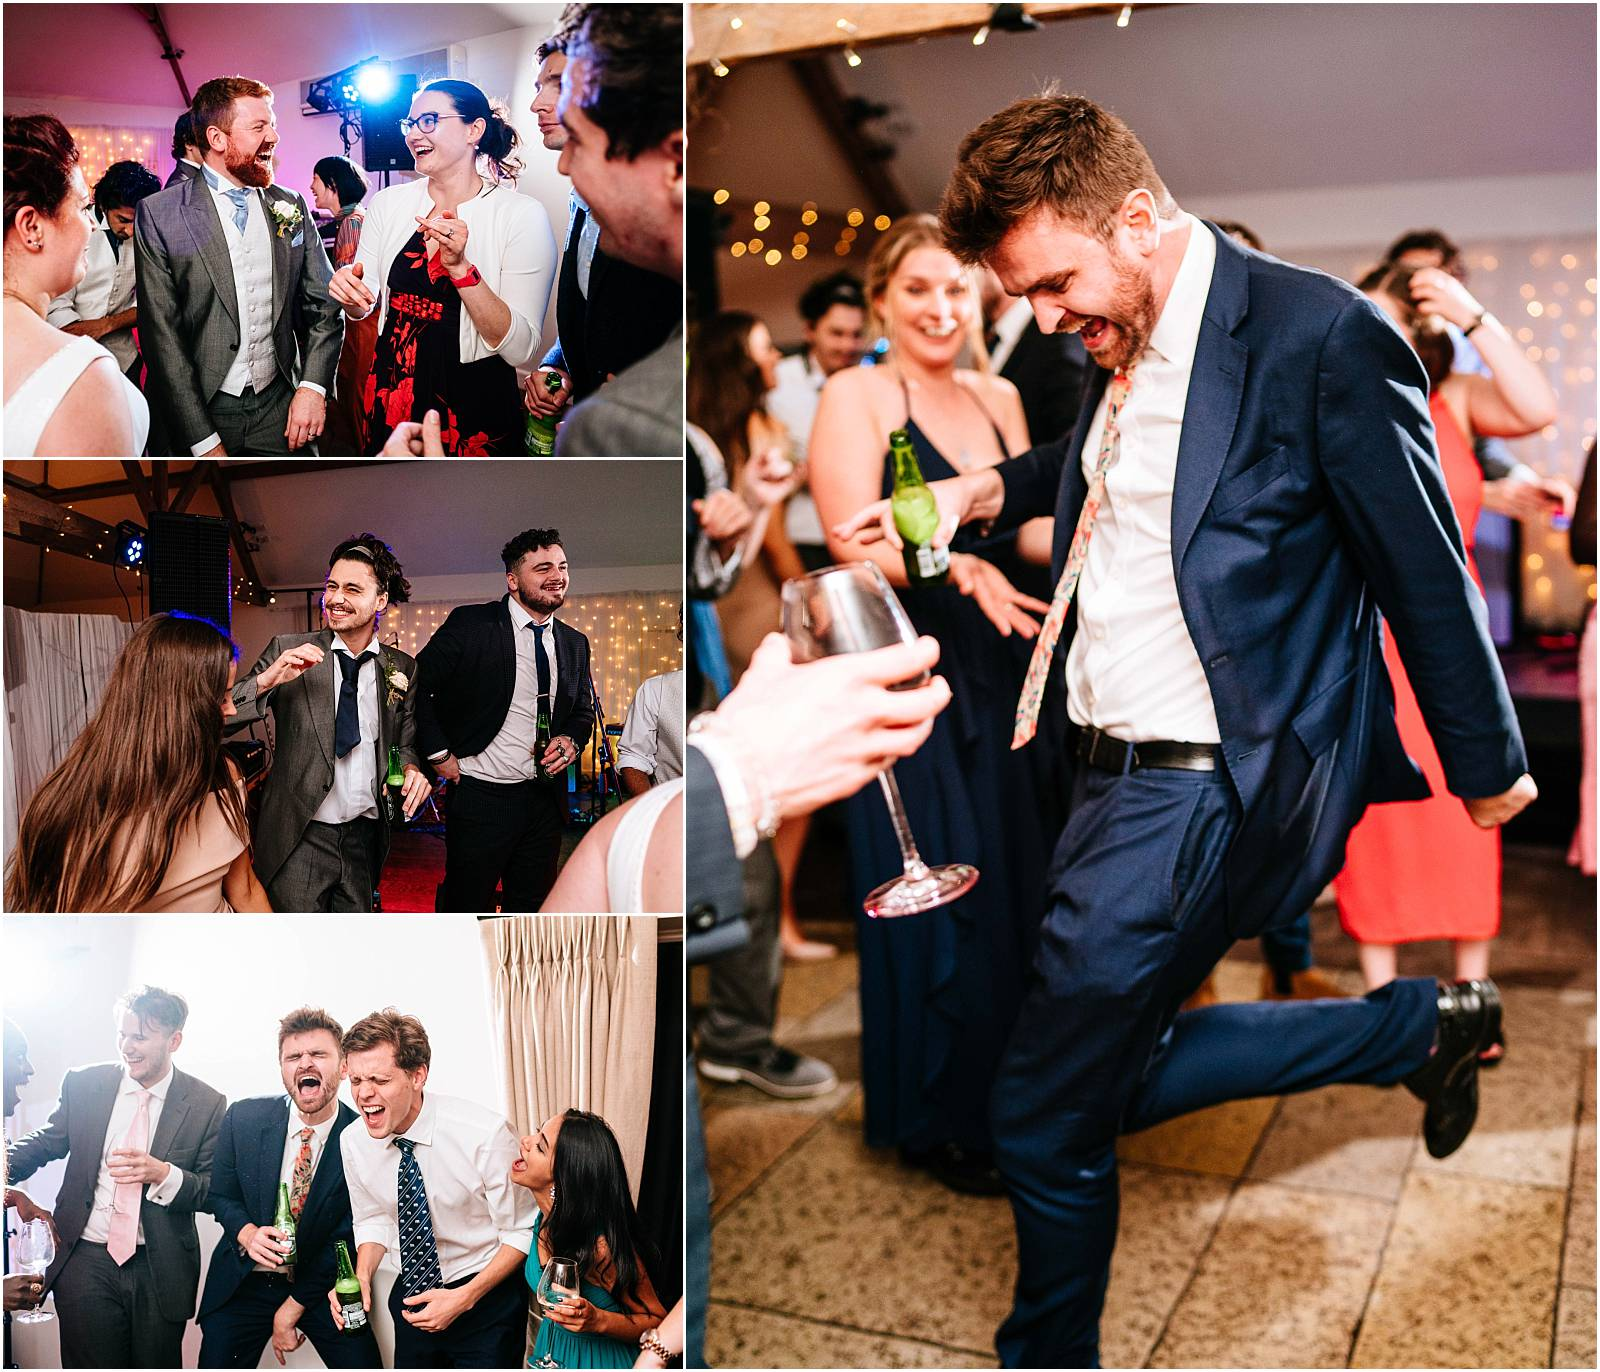 guests enjoying dancing at wedding